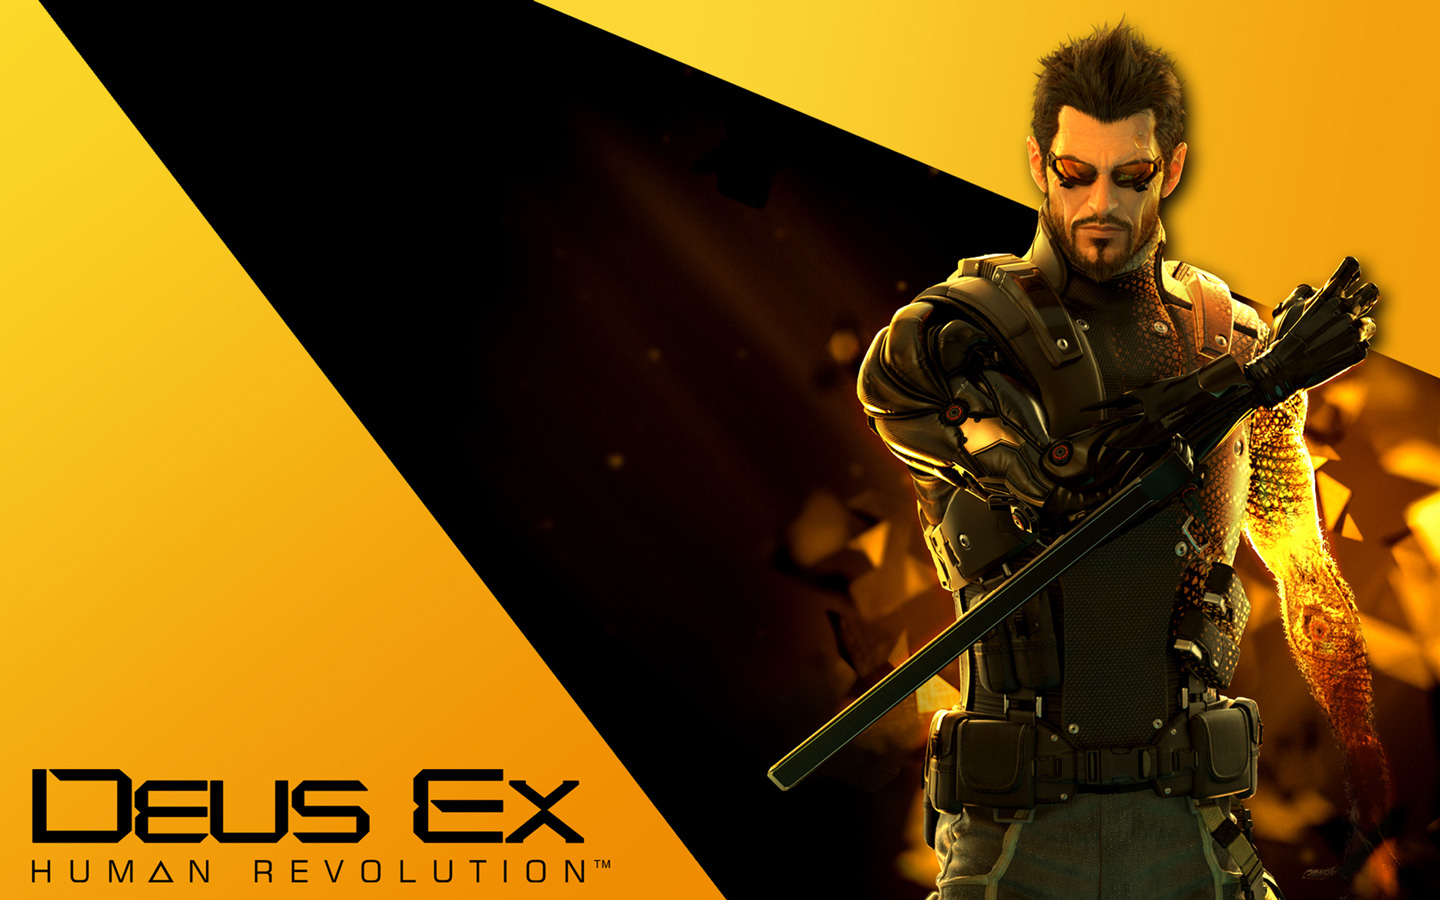 Deus Ex: Human Revolution Wallpaper in 1440x900